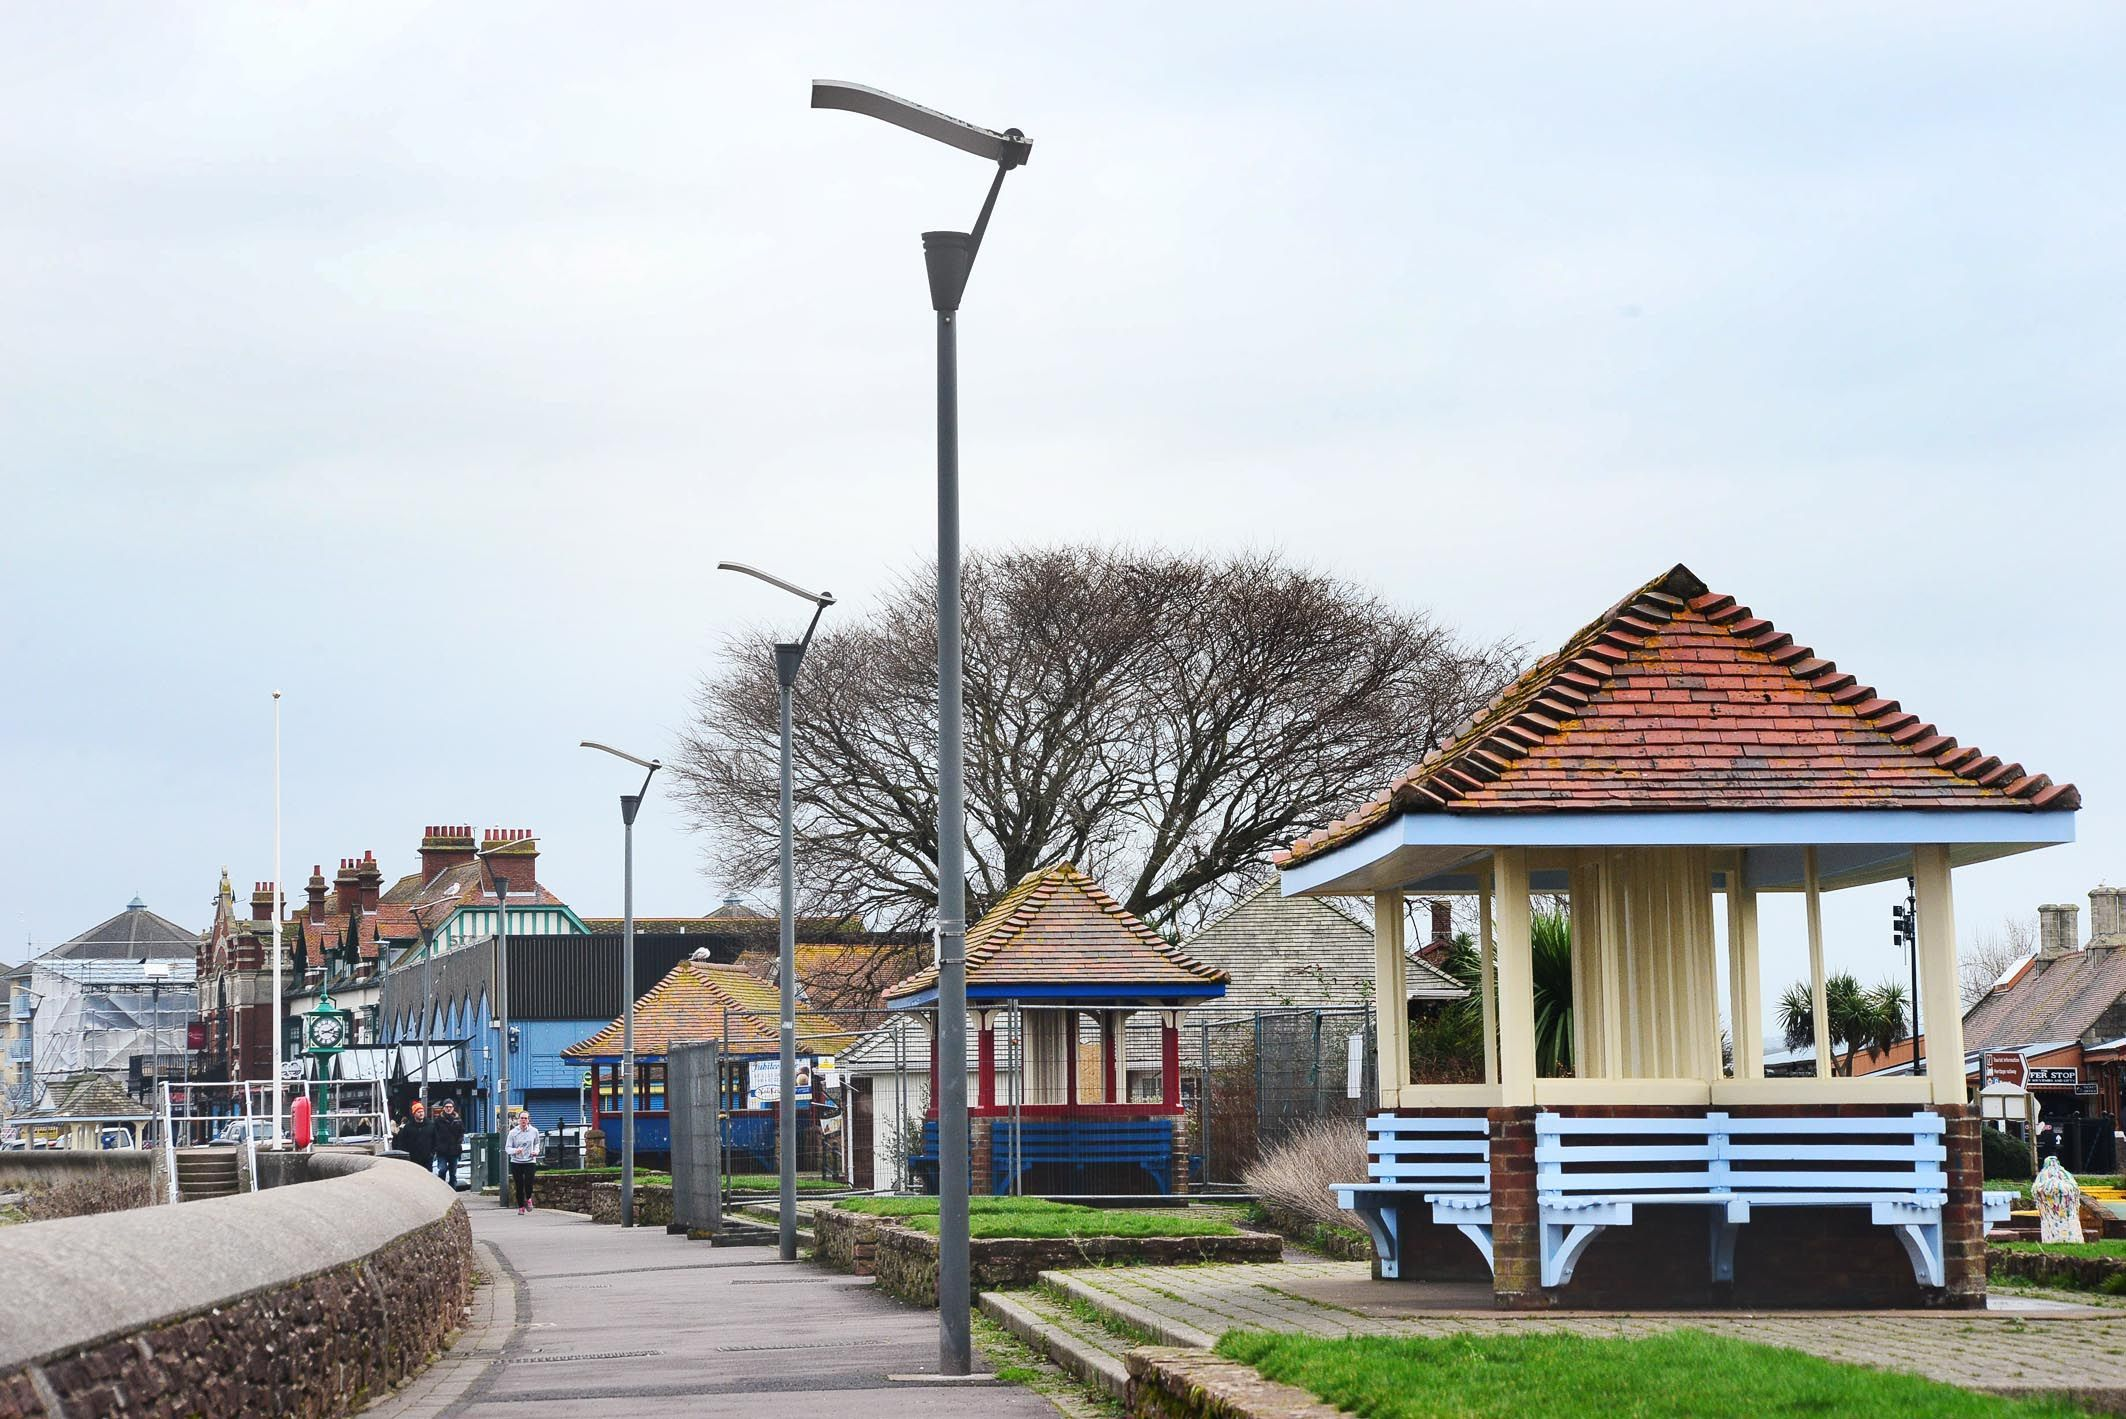 IMPROVEMENTS: Work is already underway on the Edwardian seafront shelters along the Esplanade in Minehead